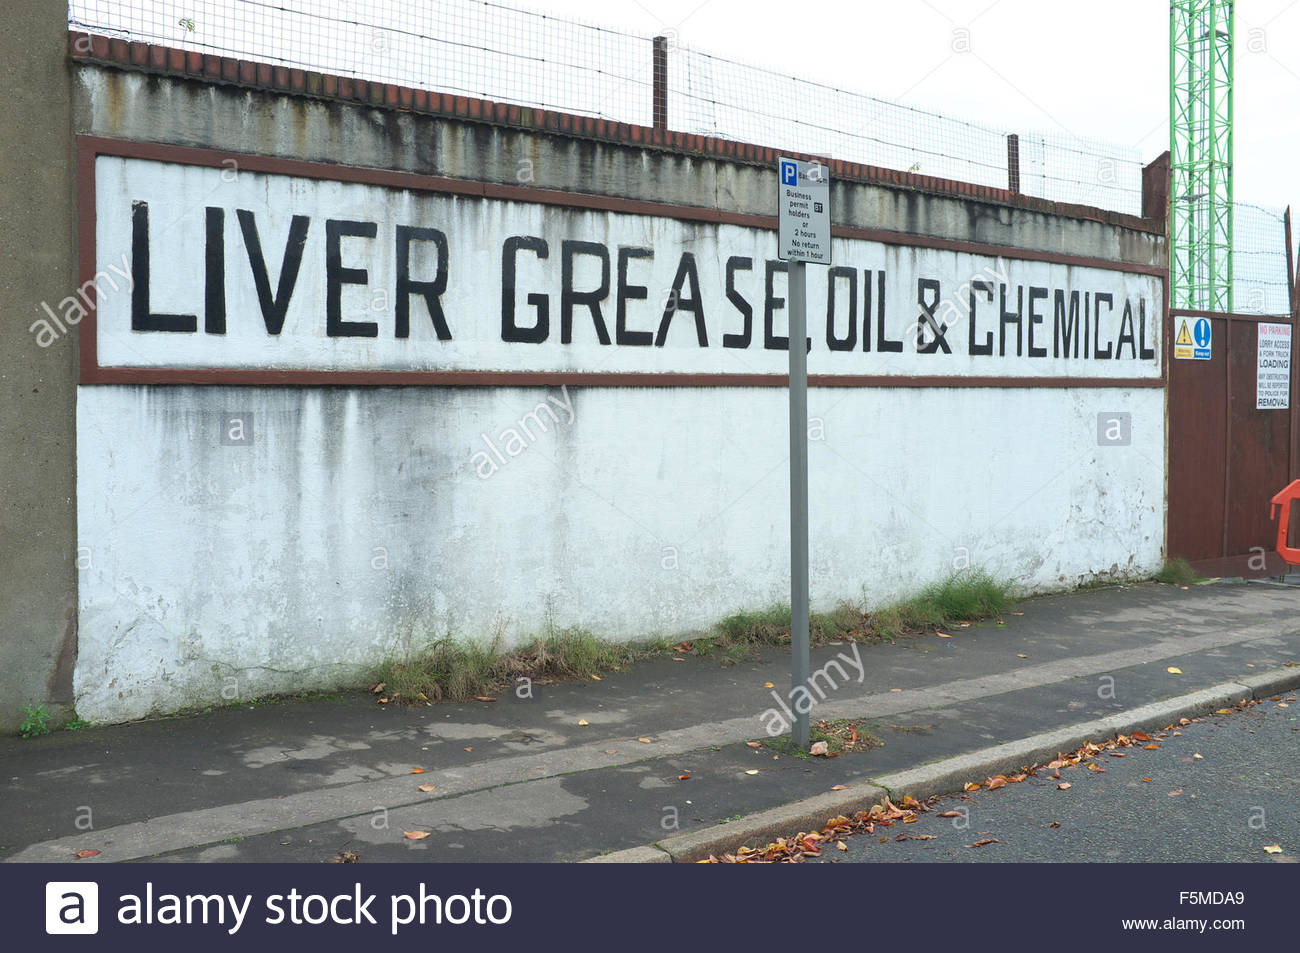 'Liver Grease Oil & Chemical' text painted on side of old manufacturing premises in central Liverpool, - Stock Image